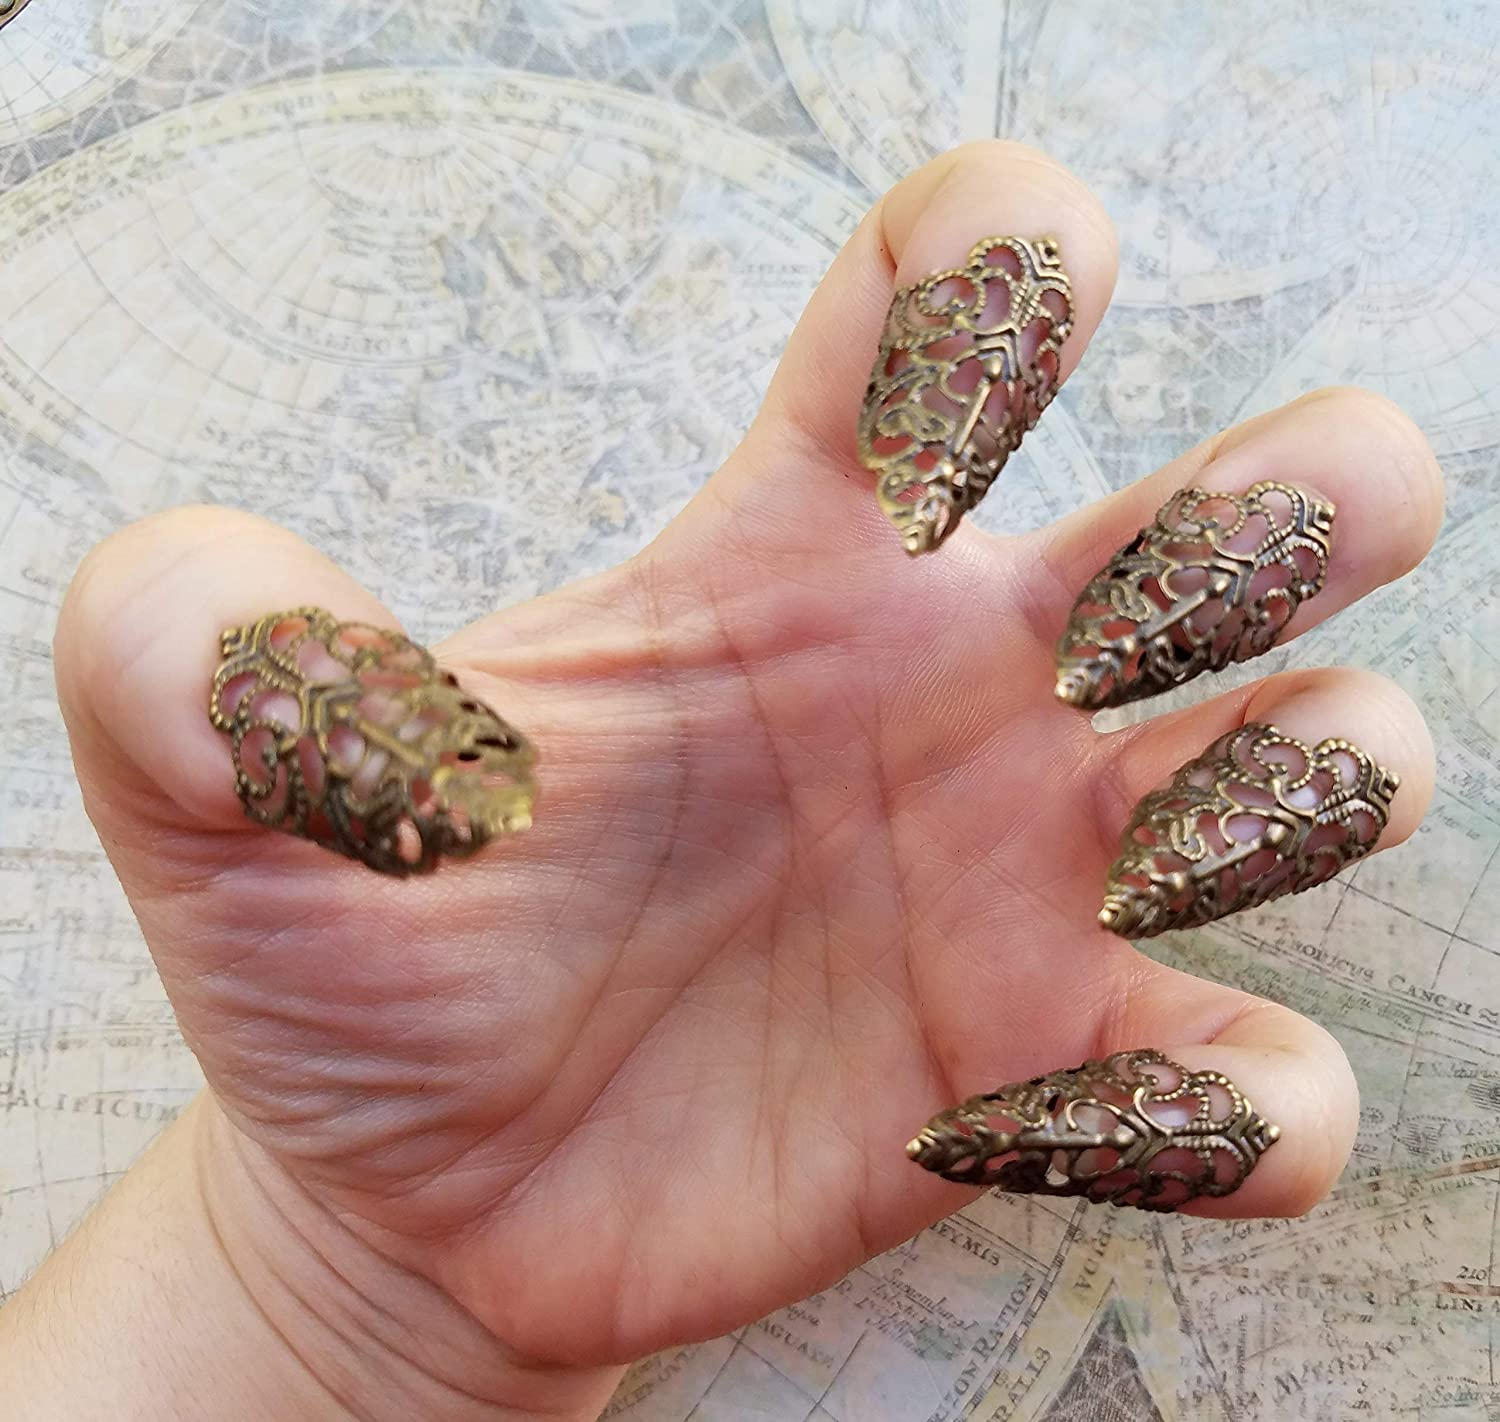 High Fashion Stiletto Nail Rings Short Sharp Nail Claws CosPlay Jewelry Goth Steampunk Fashion Jewelry 5 Brass Gothic Vampire Nails